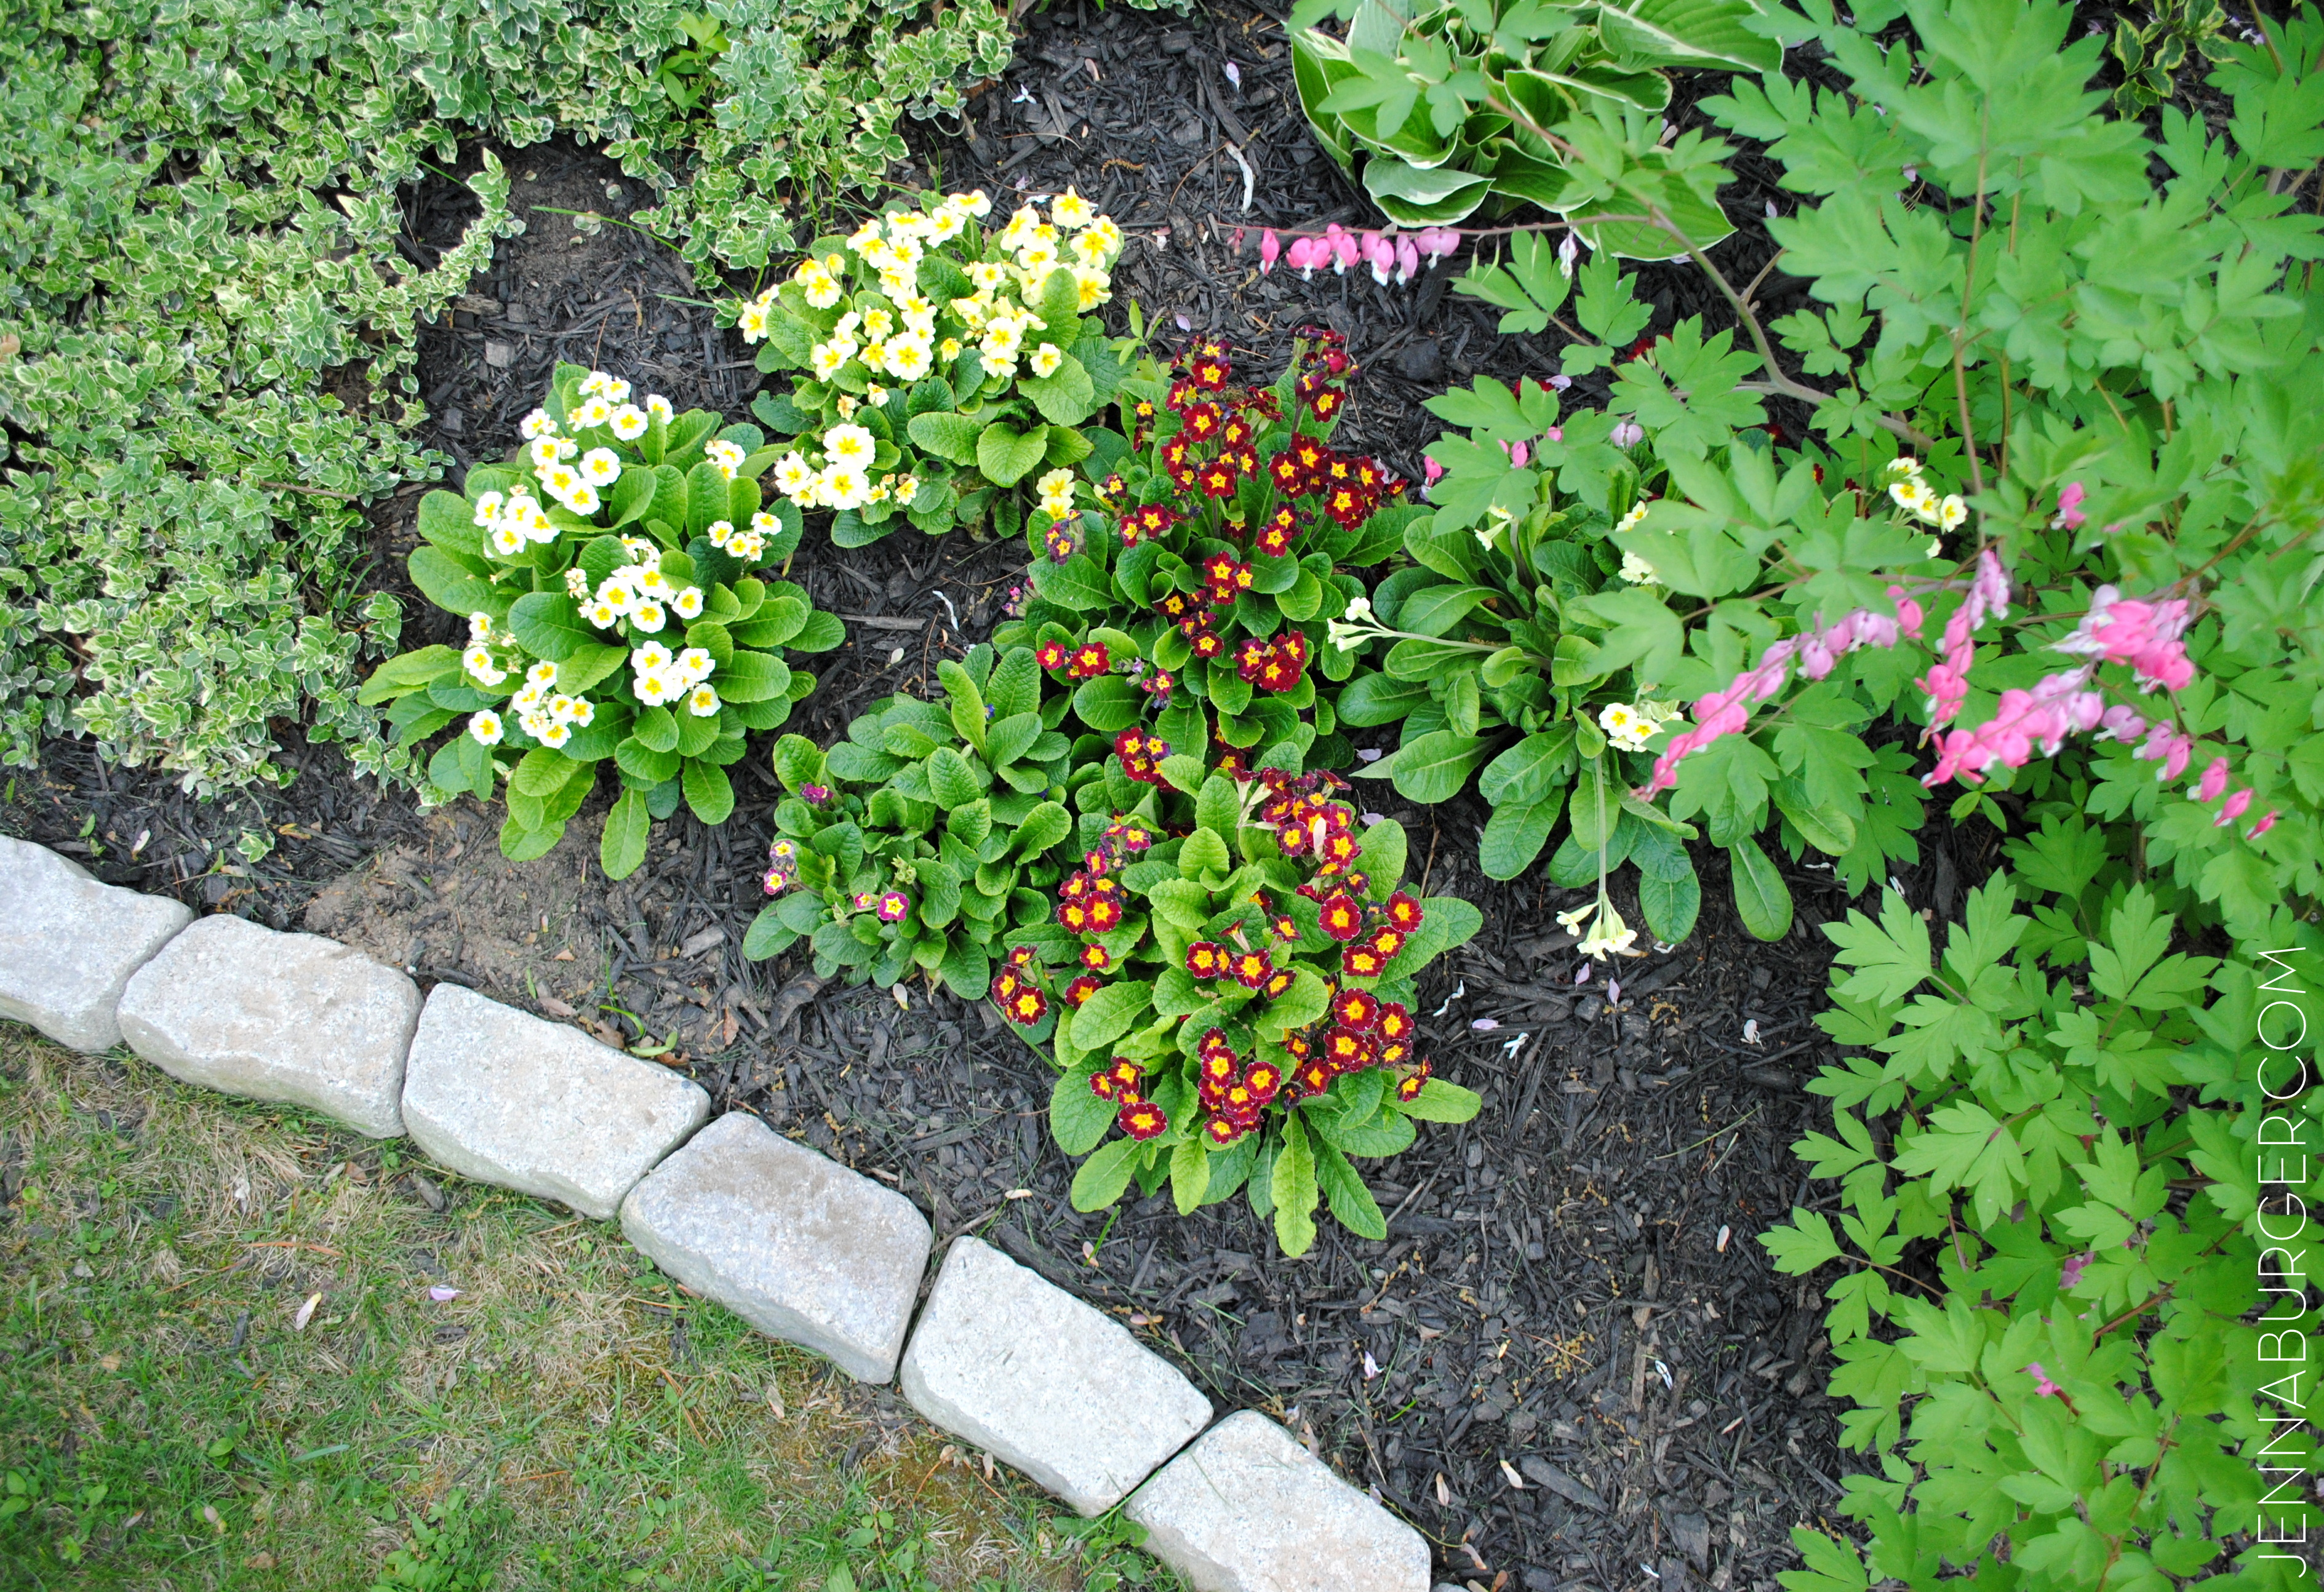 The Easiest Garden Edging Ideas That Are Budget Friendly on Backyard Patio Landscaping id=21800